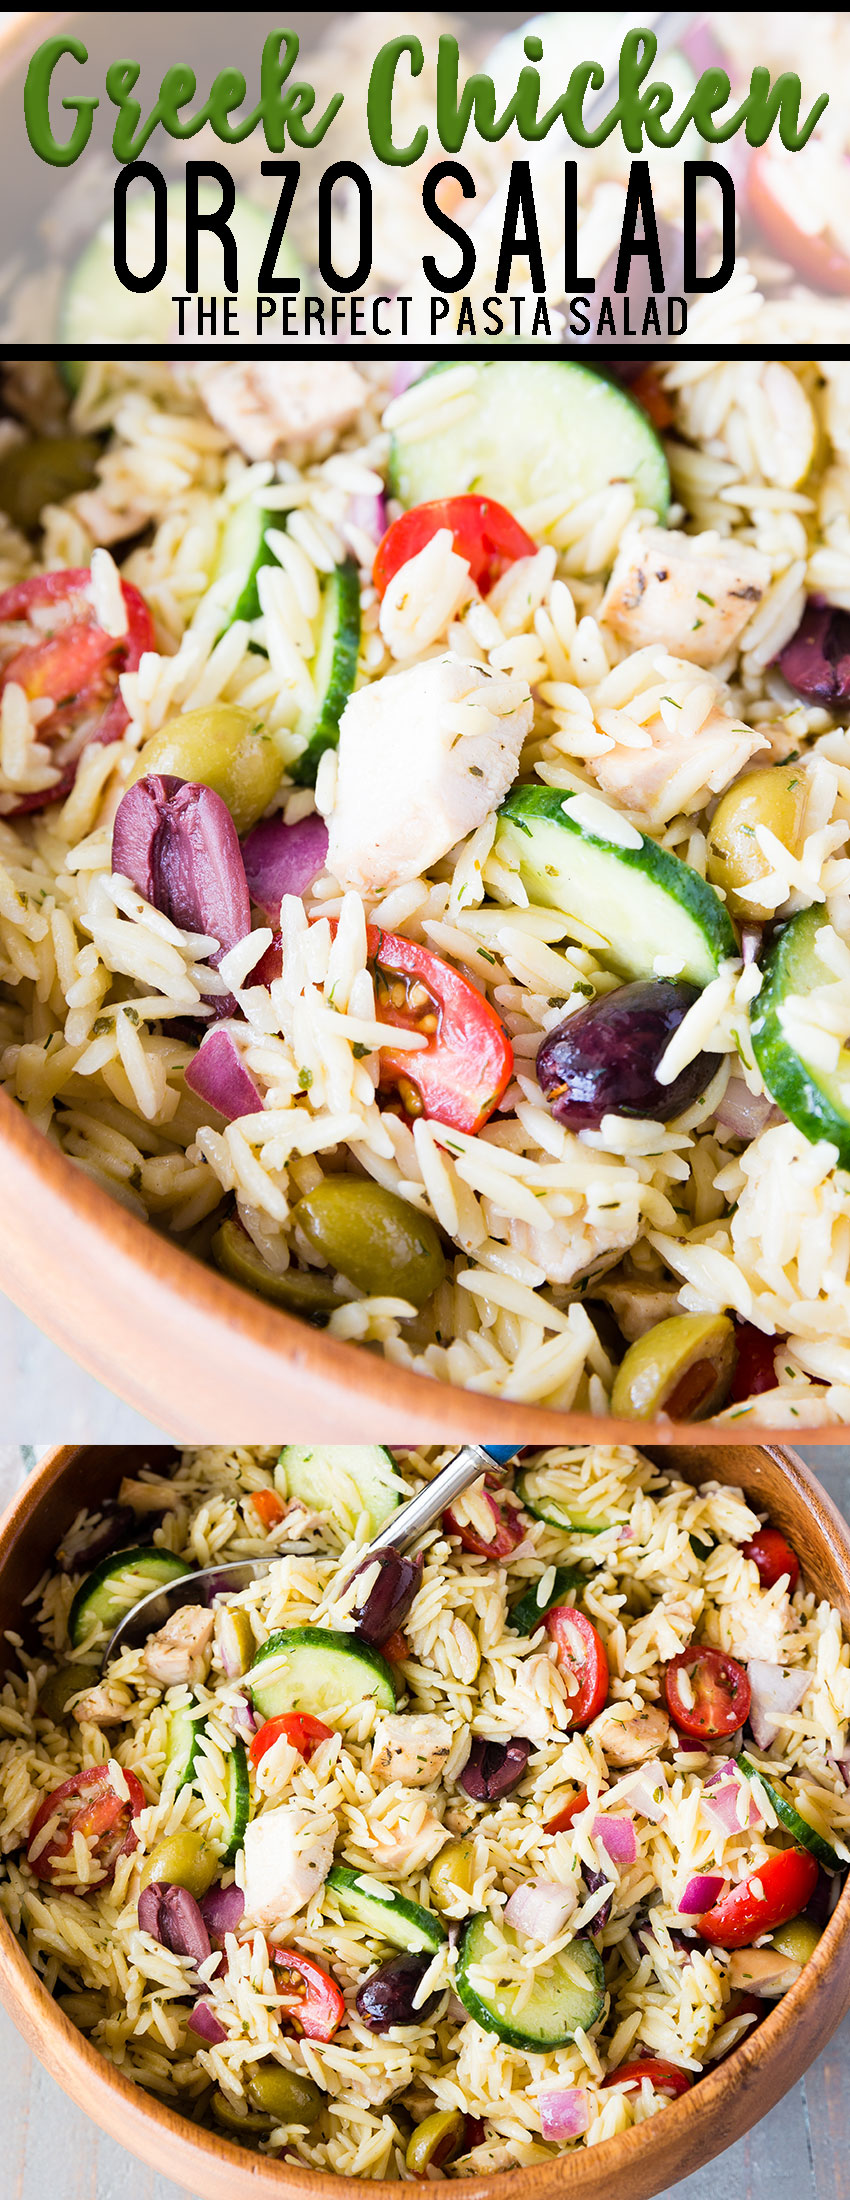 Greek Chicken Orzo Pasta Salad